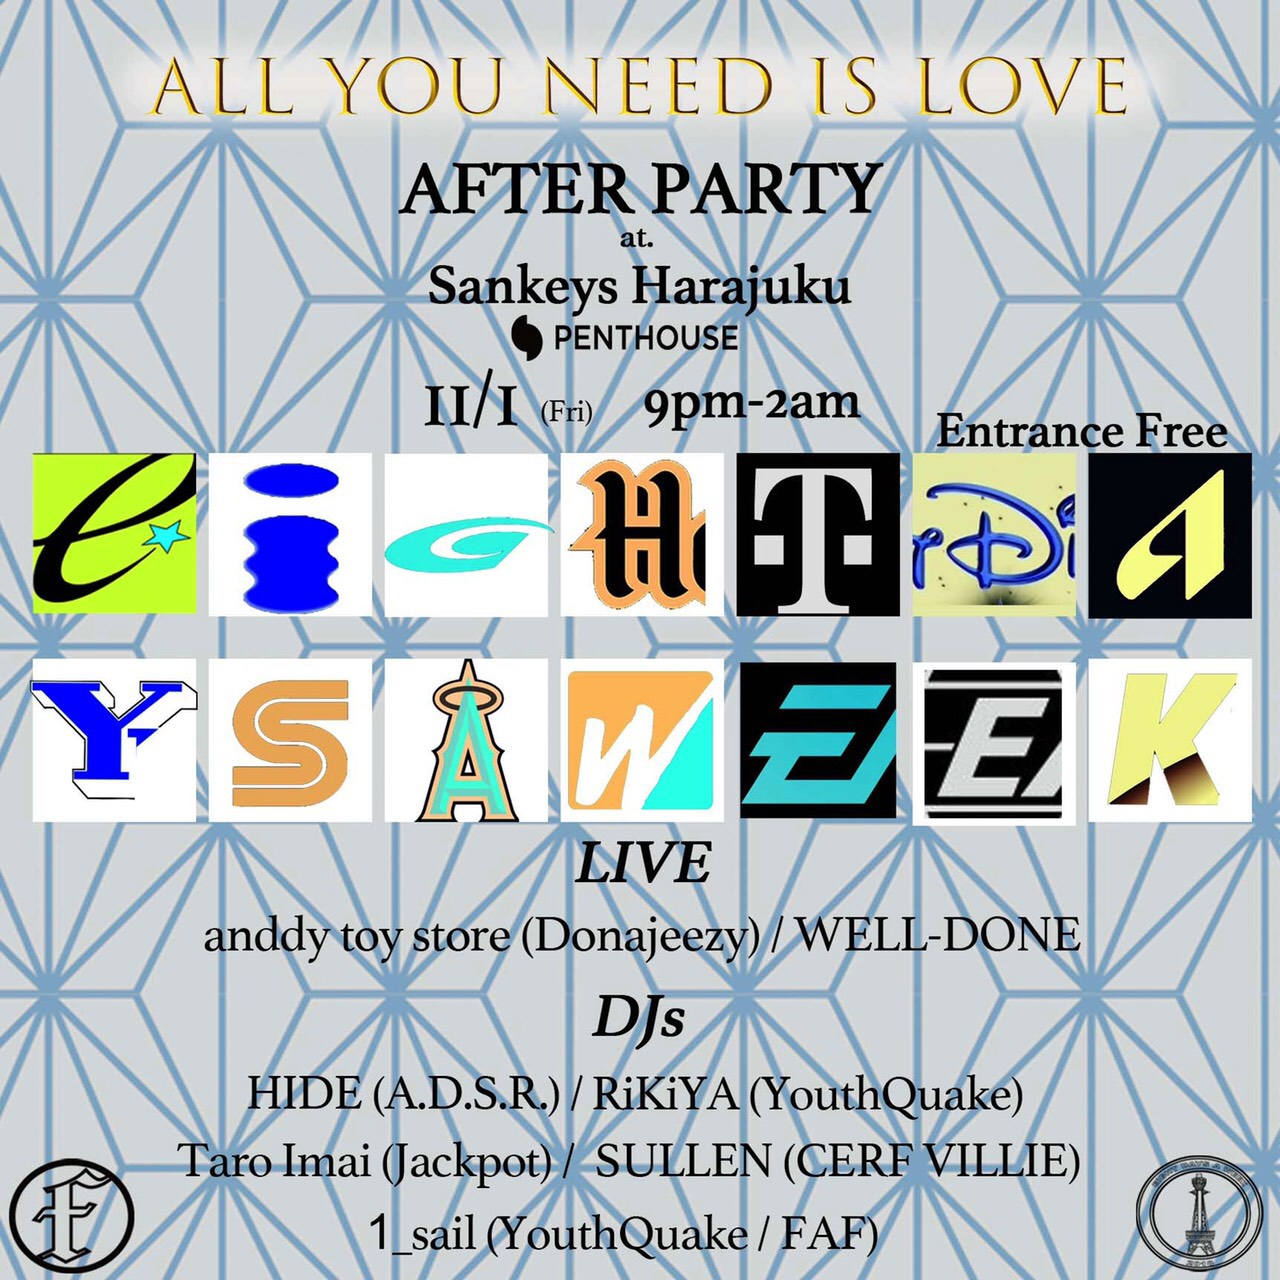 ALL YOU NEED IS LOVE AFTER PARTY